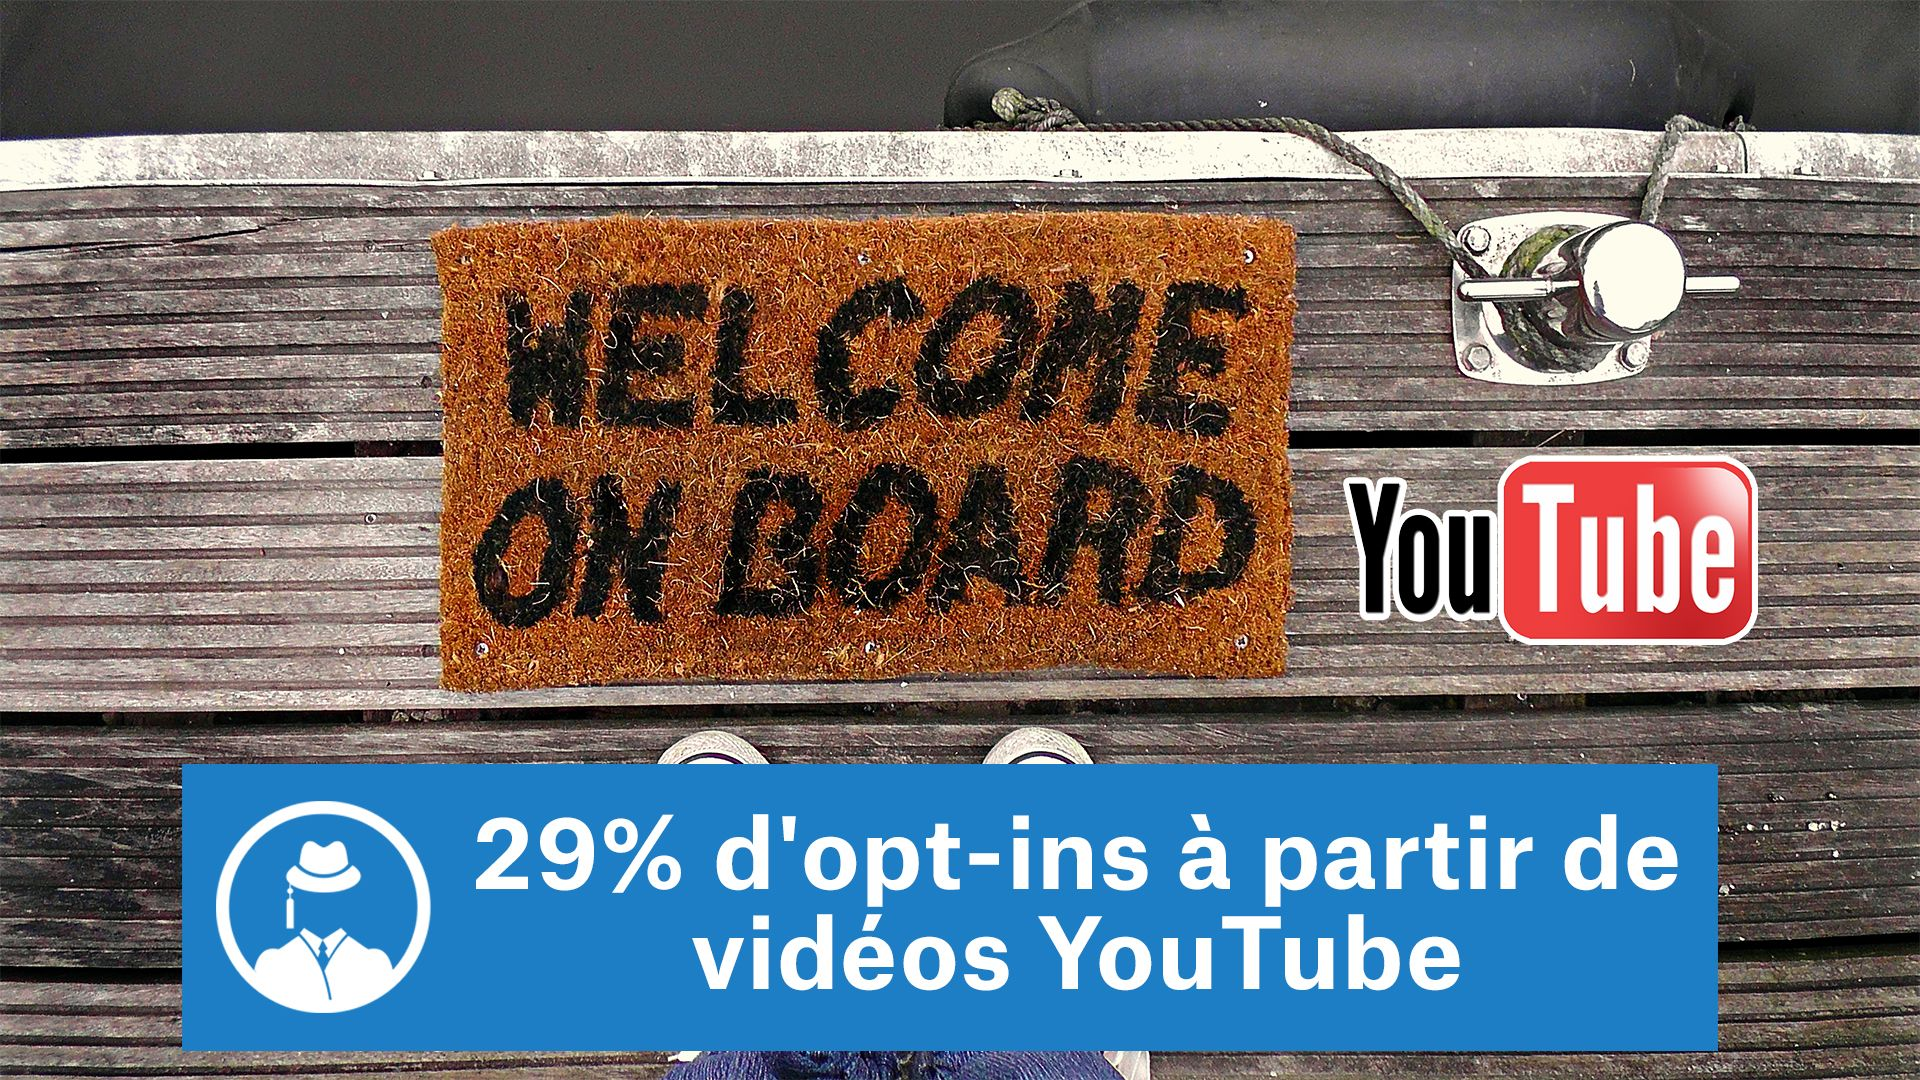 29% d'opt-ins à partir de vidéos YouTube #GrowthHacking #WebMarketing #FormationGrowthHacking #CentreDeFormationFrance #TunnelAARRR #AARRR #SocialMedia #CommunityManagement #SEO #MarketingDigital #SiteWeb #YouTube